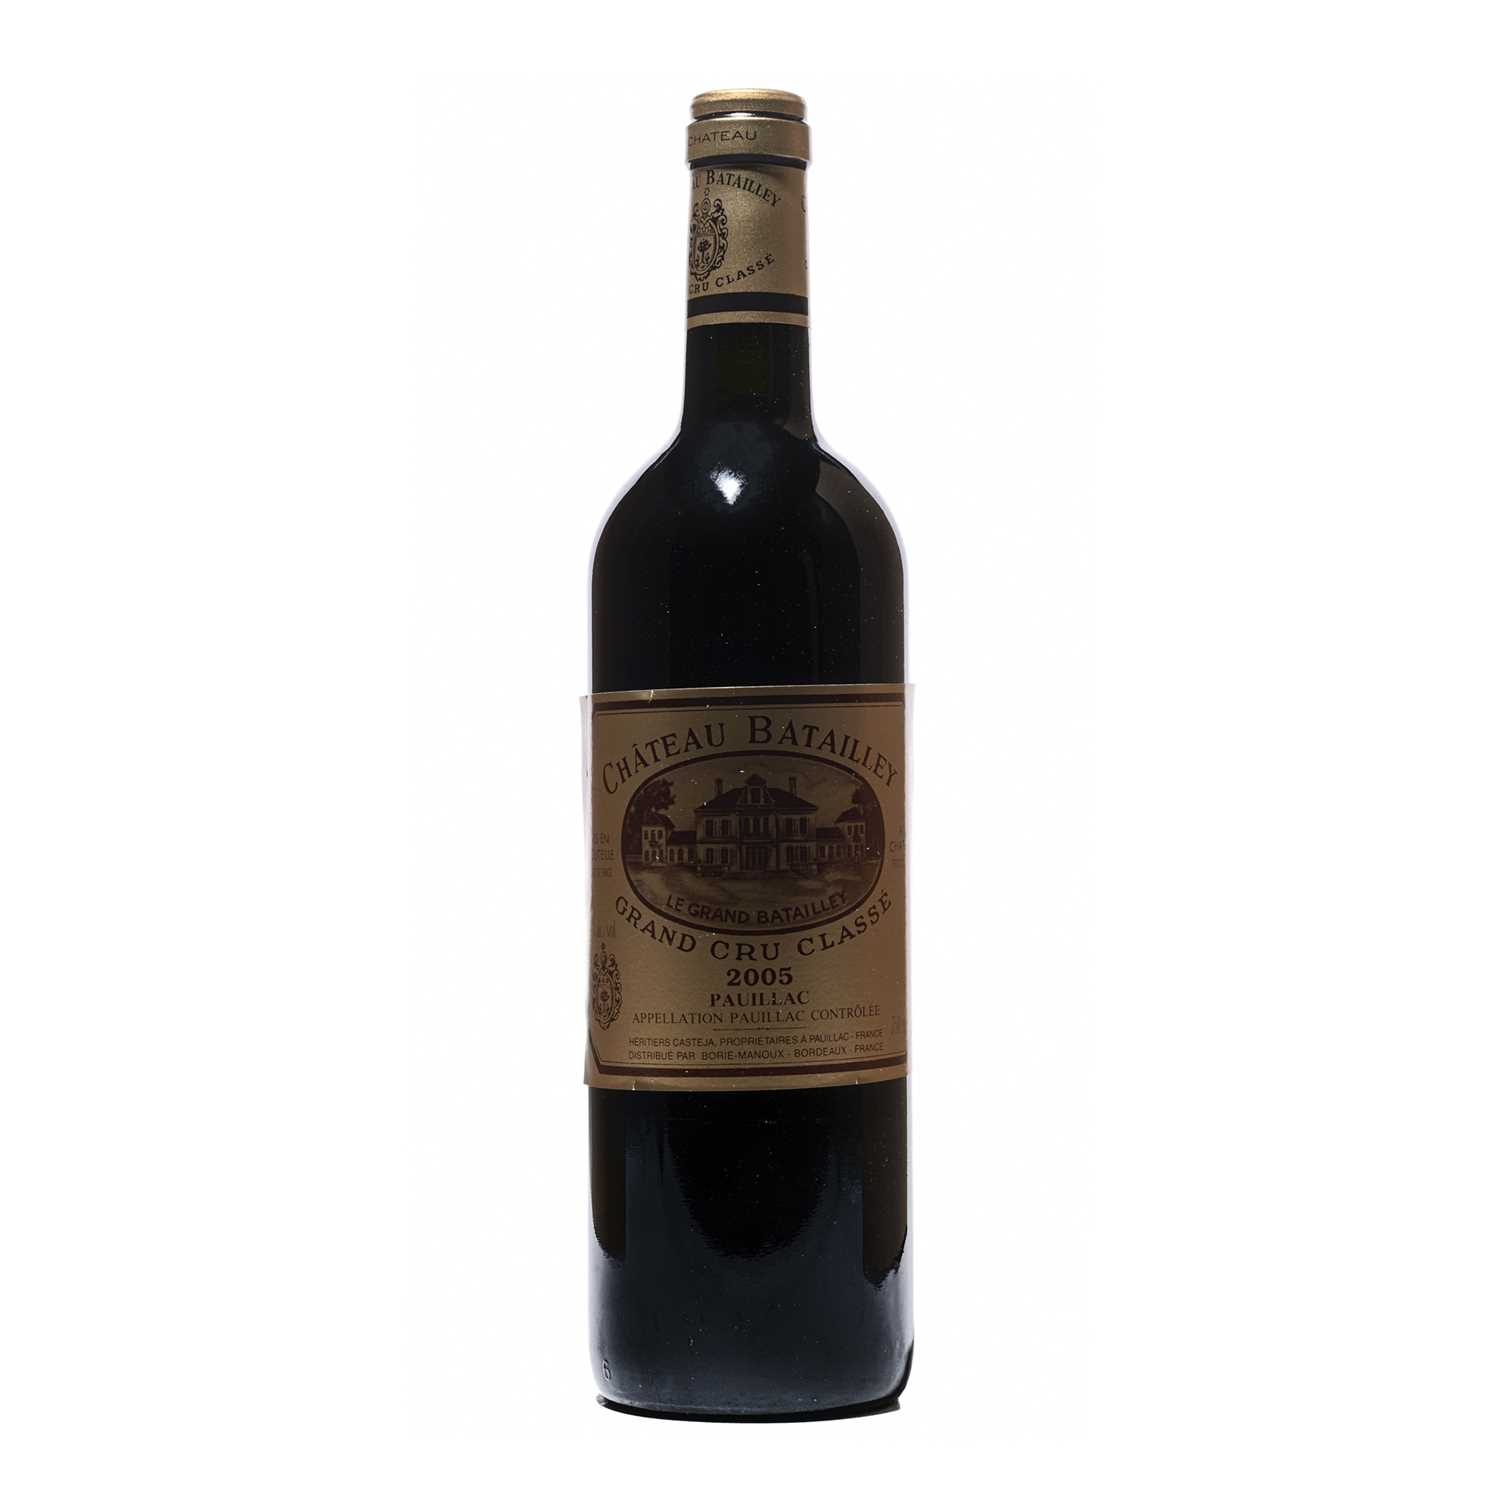 Lot 28 - 12 bottles 2005 Chateau Batailley